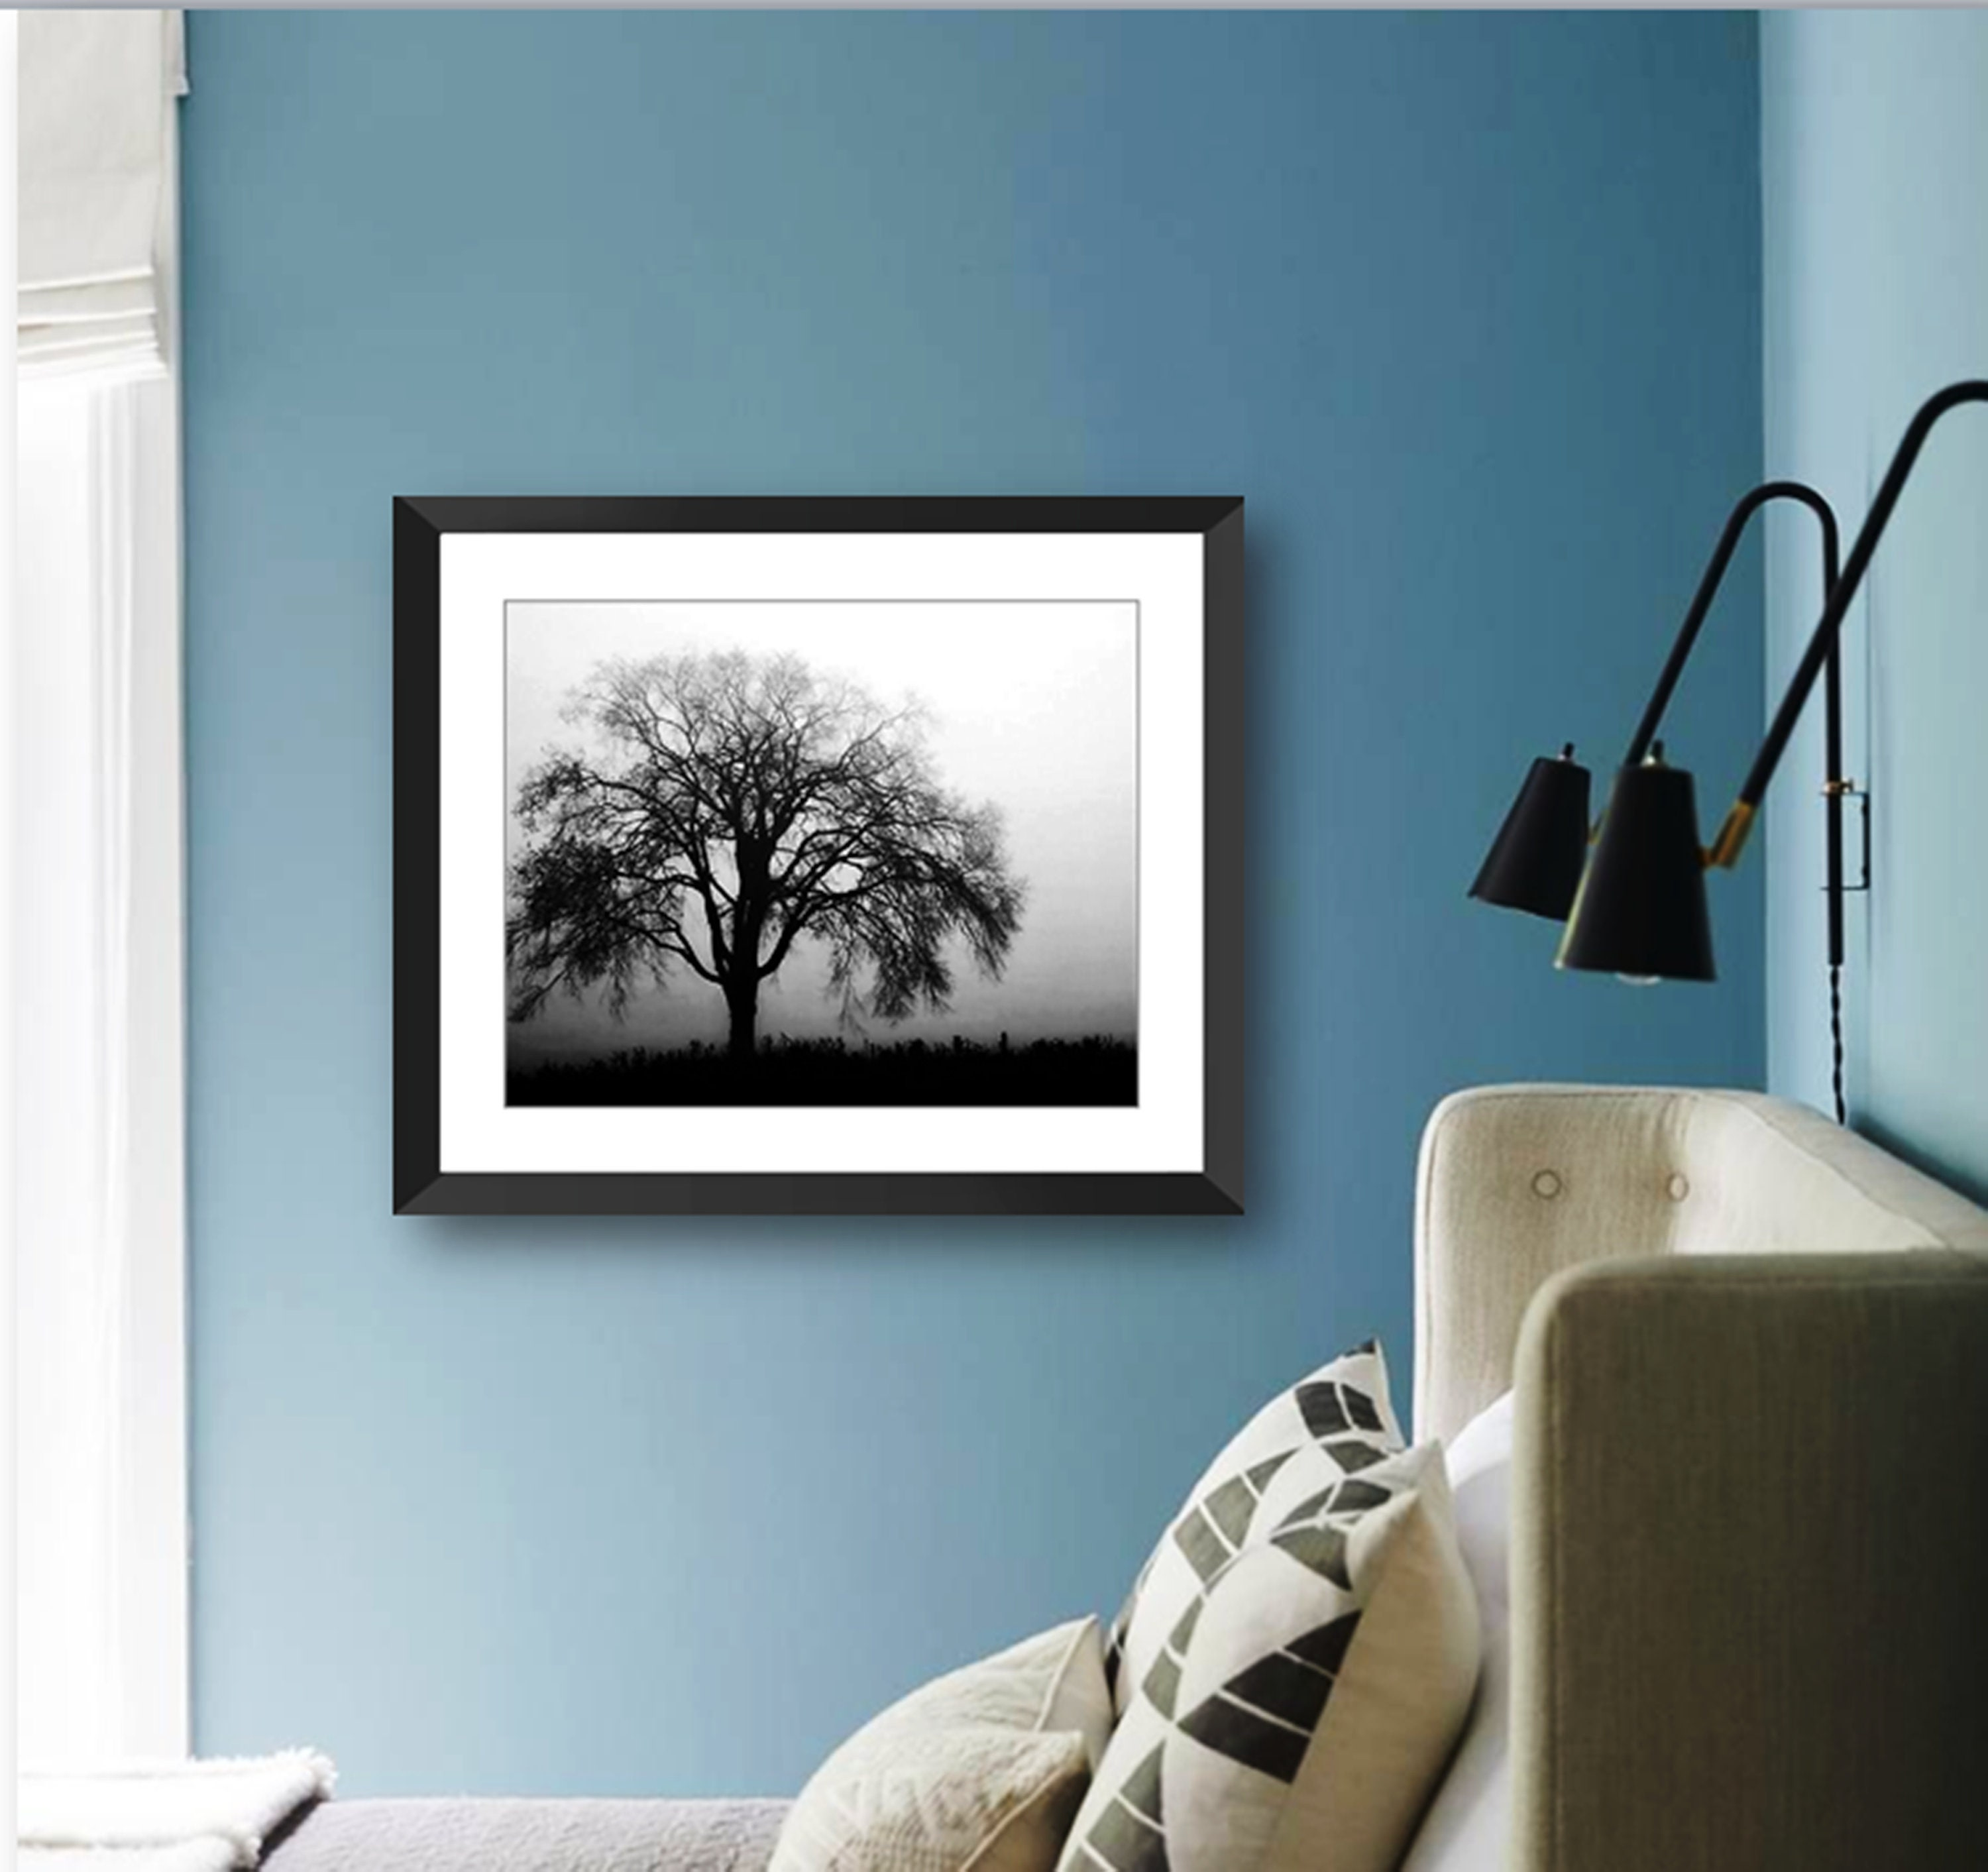 Weeping Willow Tree Foggy Morning Black And White Framed Photo